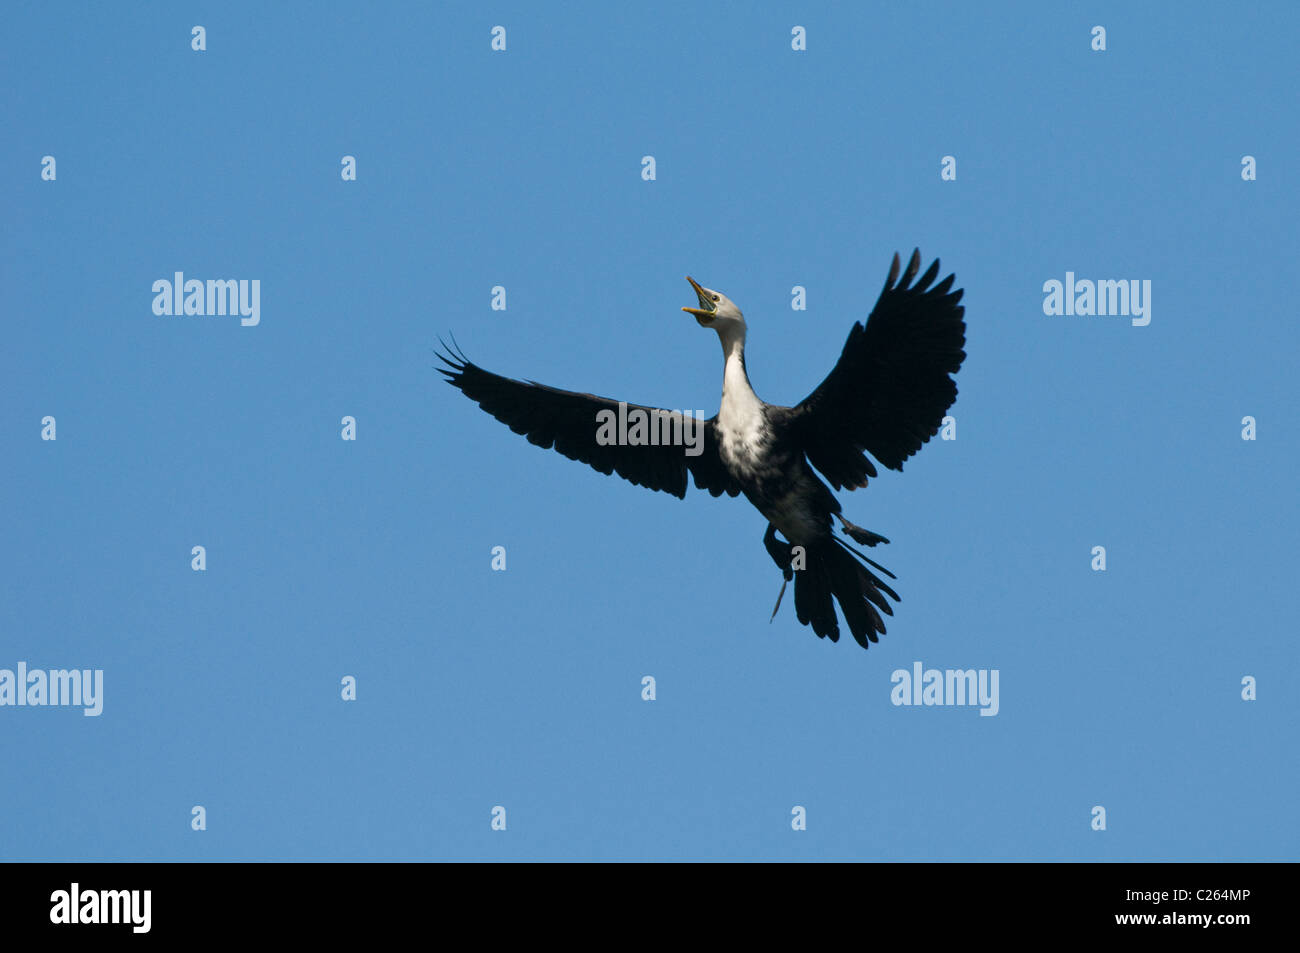 A Shag prepares to land in a tree - Stock Image